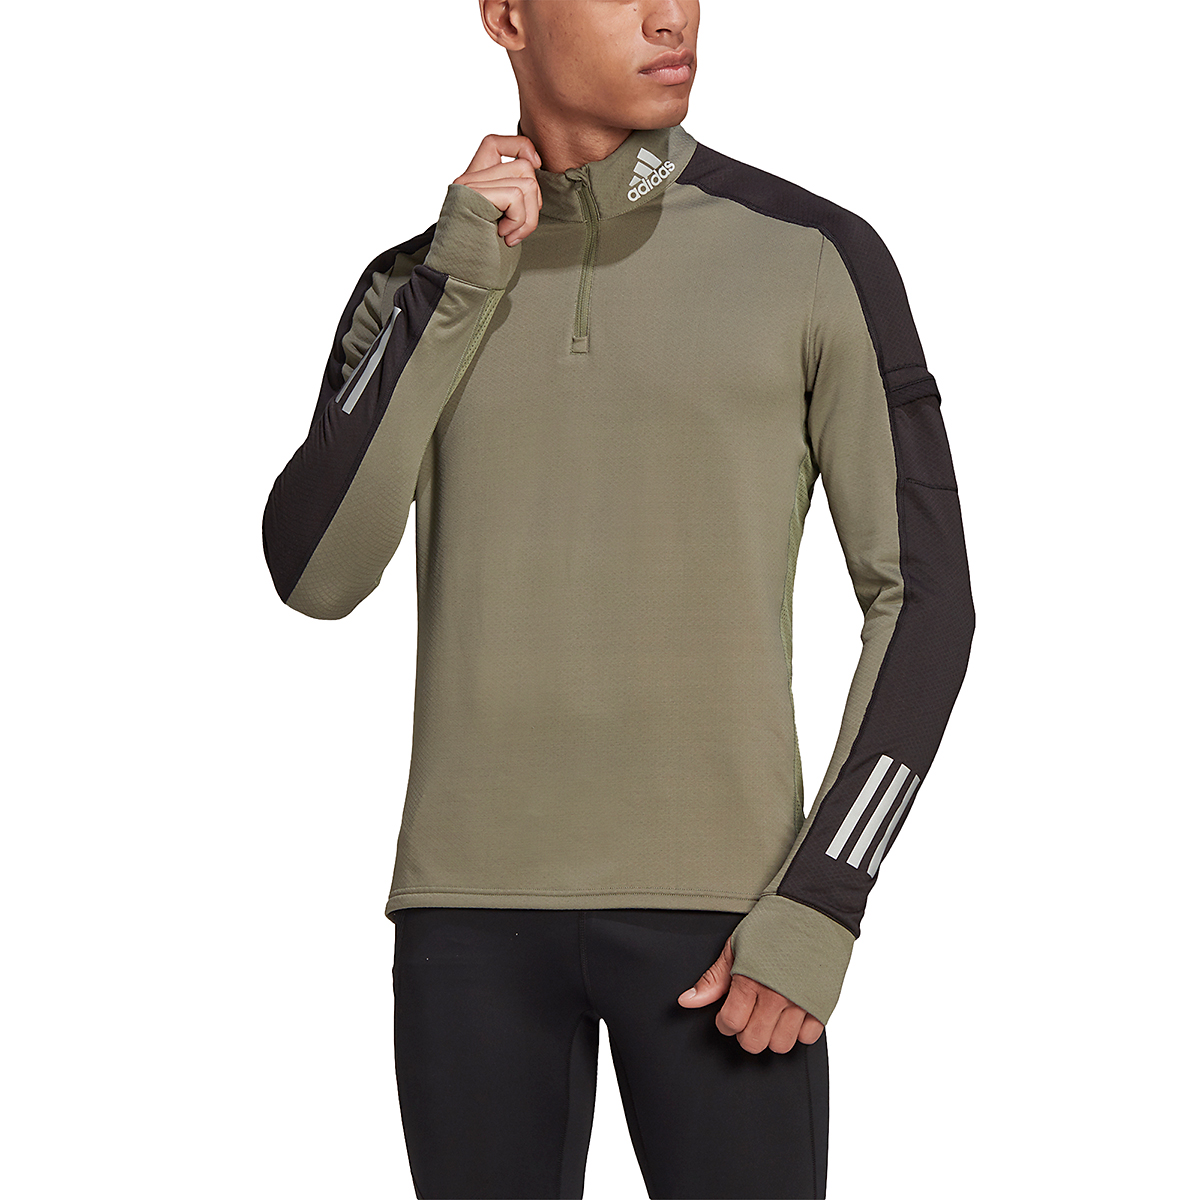 Men's Adidas Own the Run 1/2 Zip Warm Long Sleeve, , large, image 1